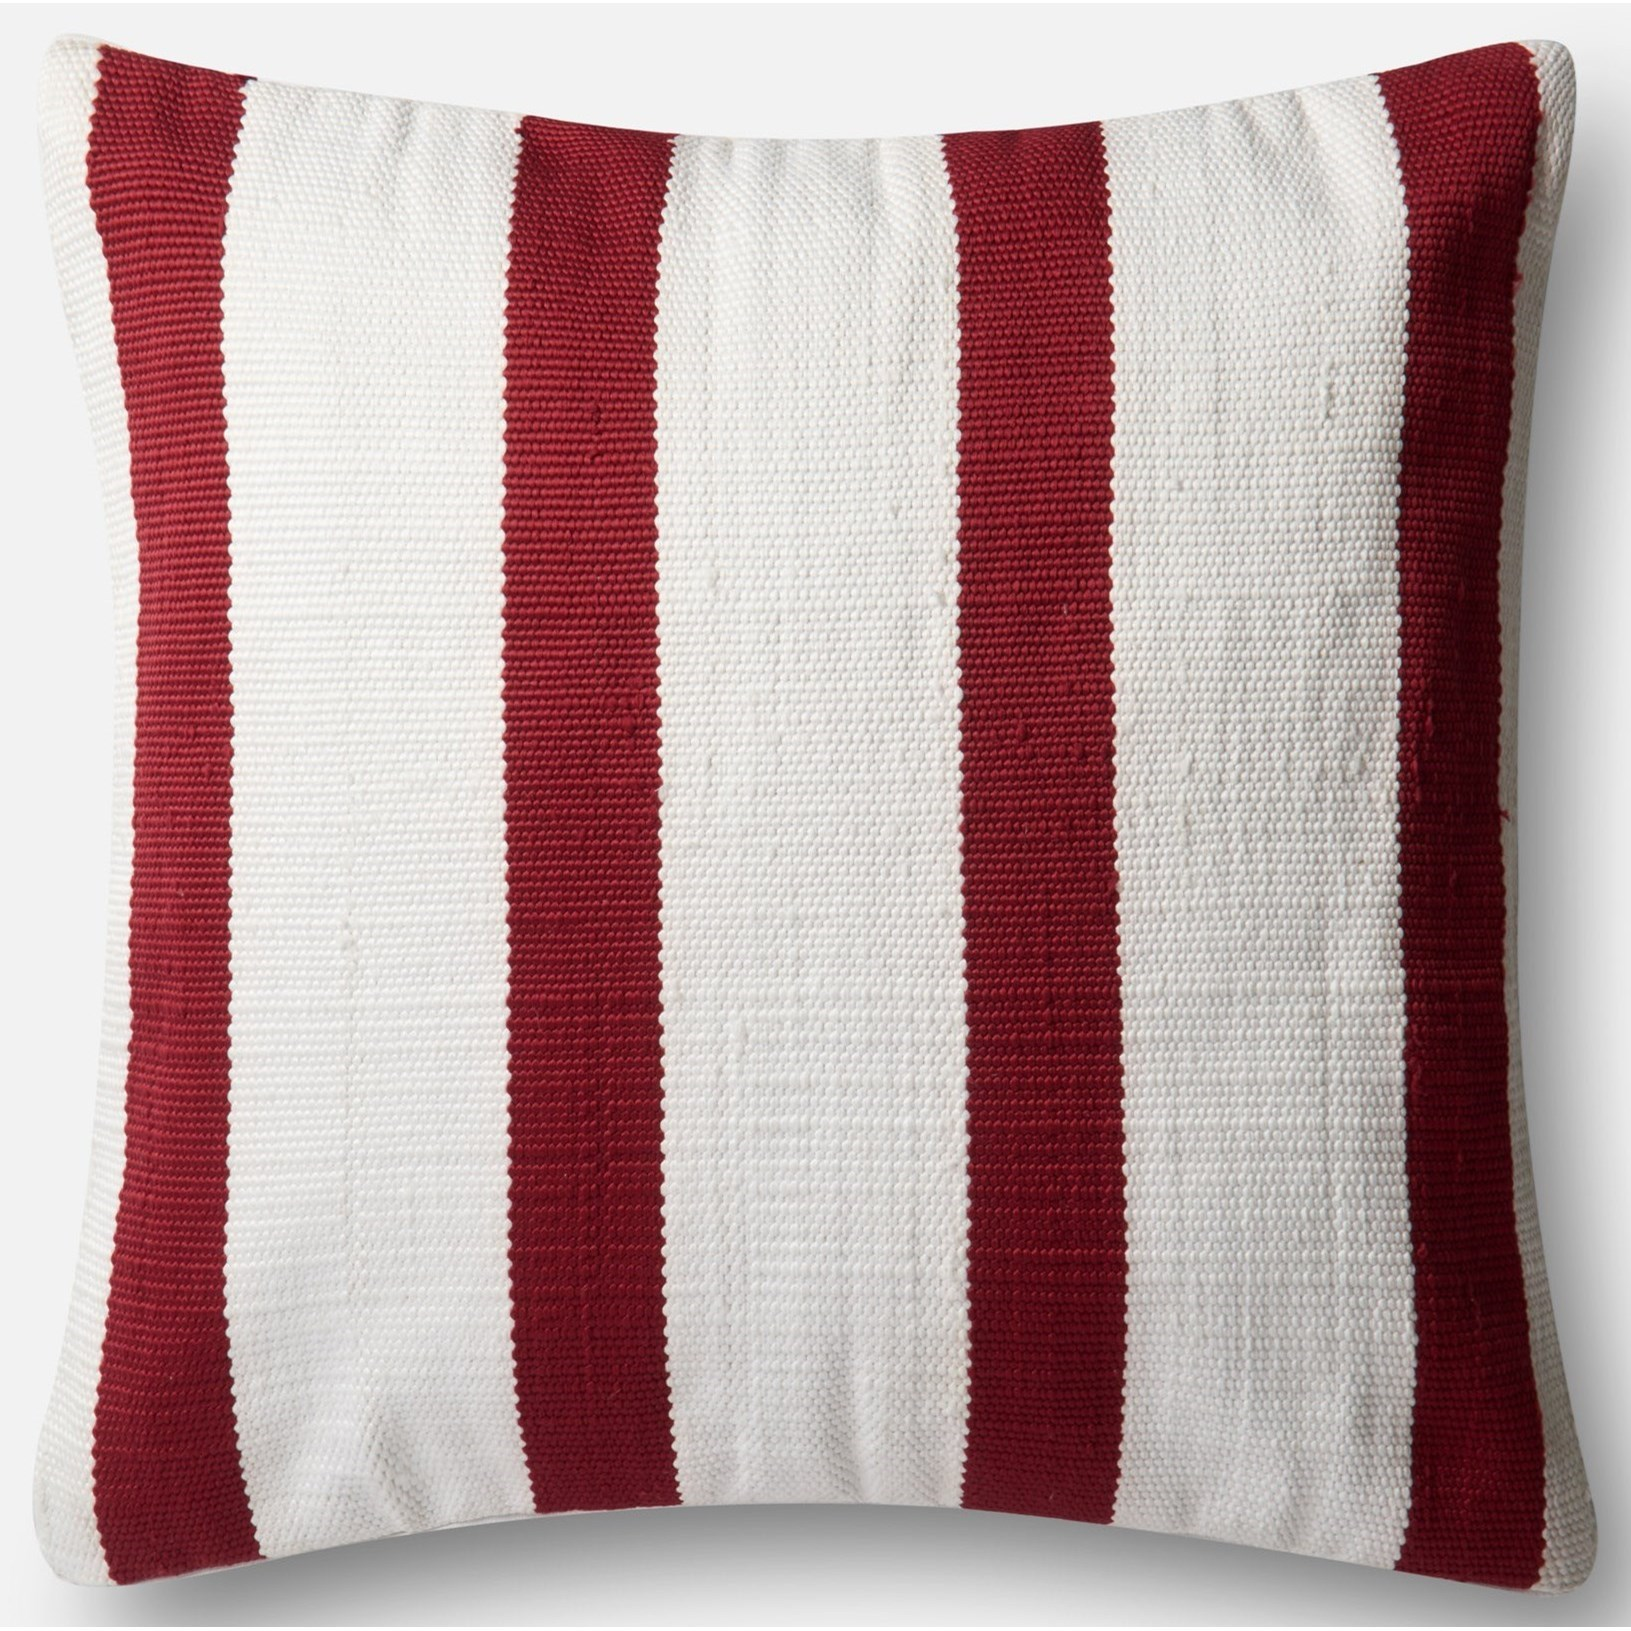 """Indoor/Outdoor 22"""" X 22"""" Down Pillow by Loloi Rugs at Virginia Furniture Market"""